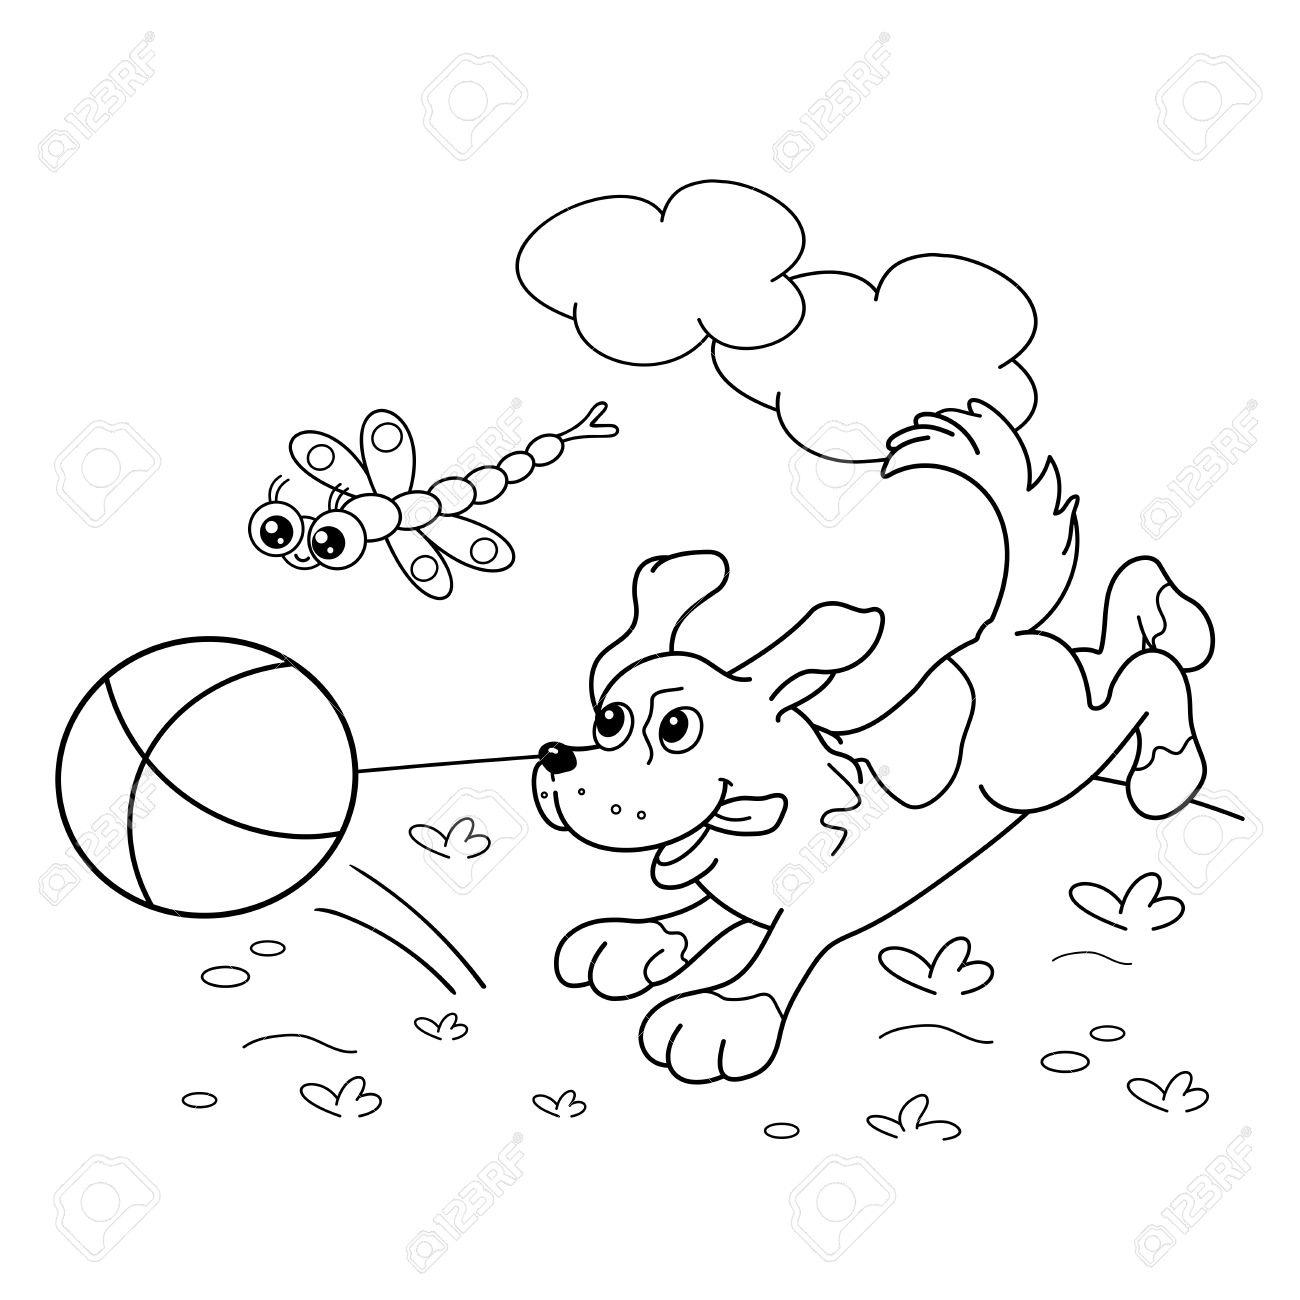 Coloring Page Outline Of Cartoon Dog With Ball And With Dragonfly ...